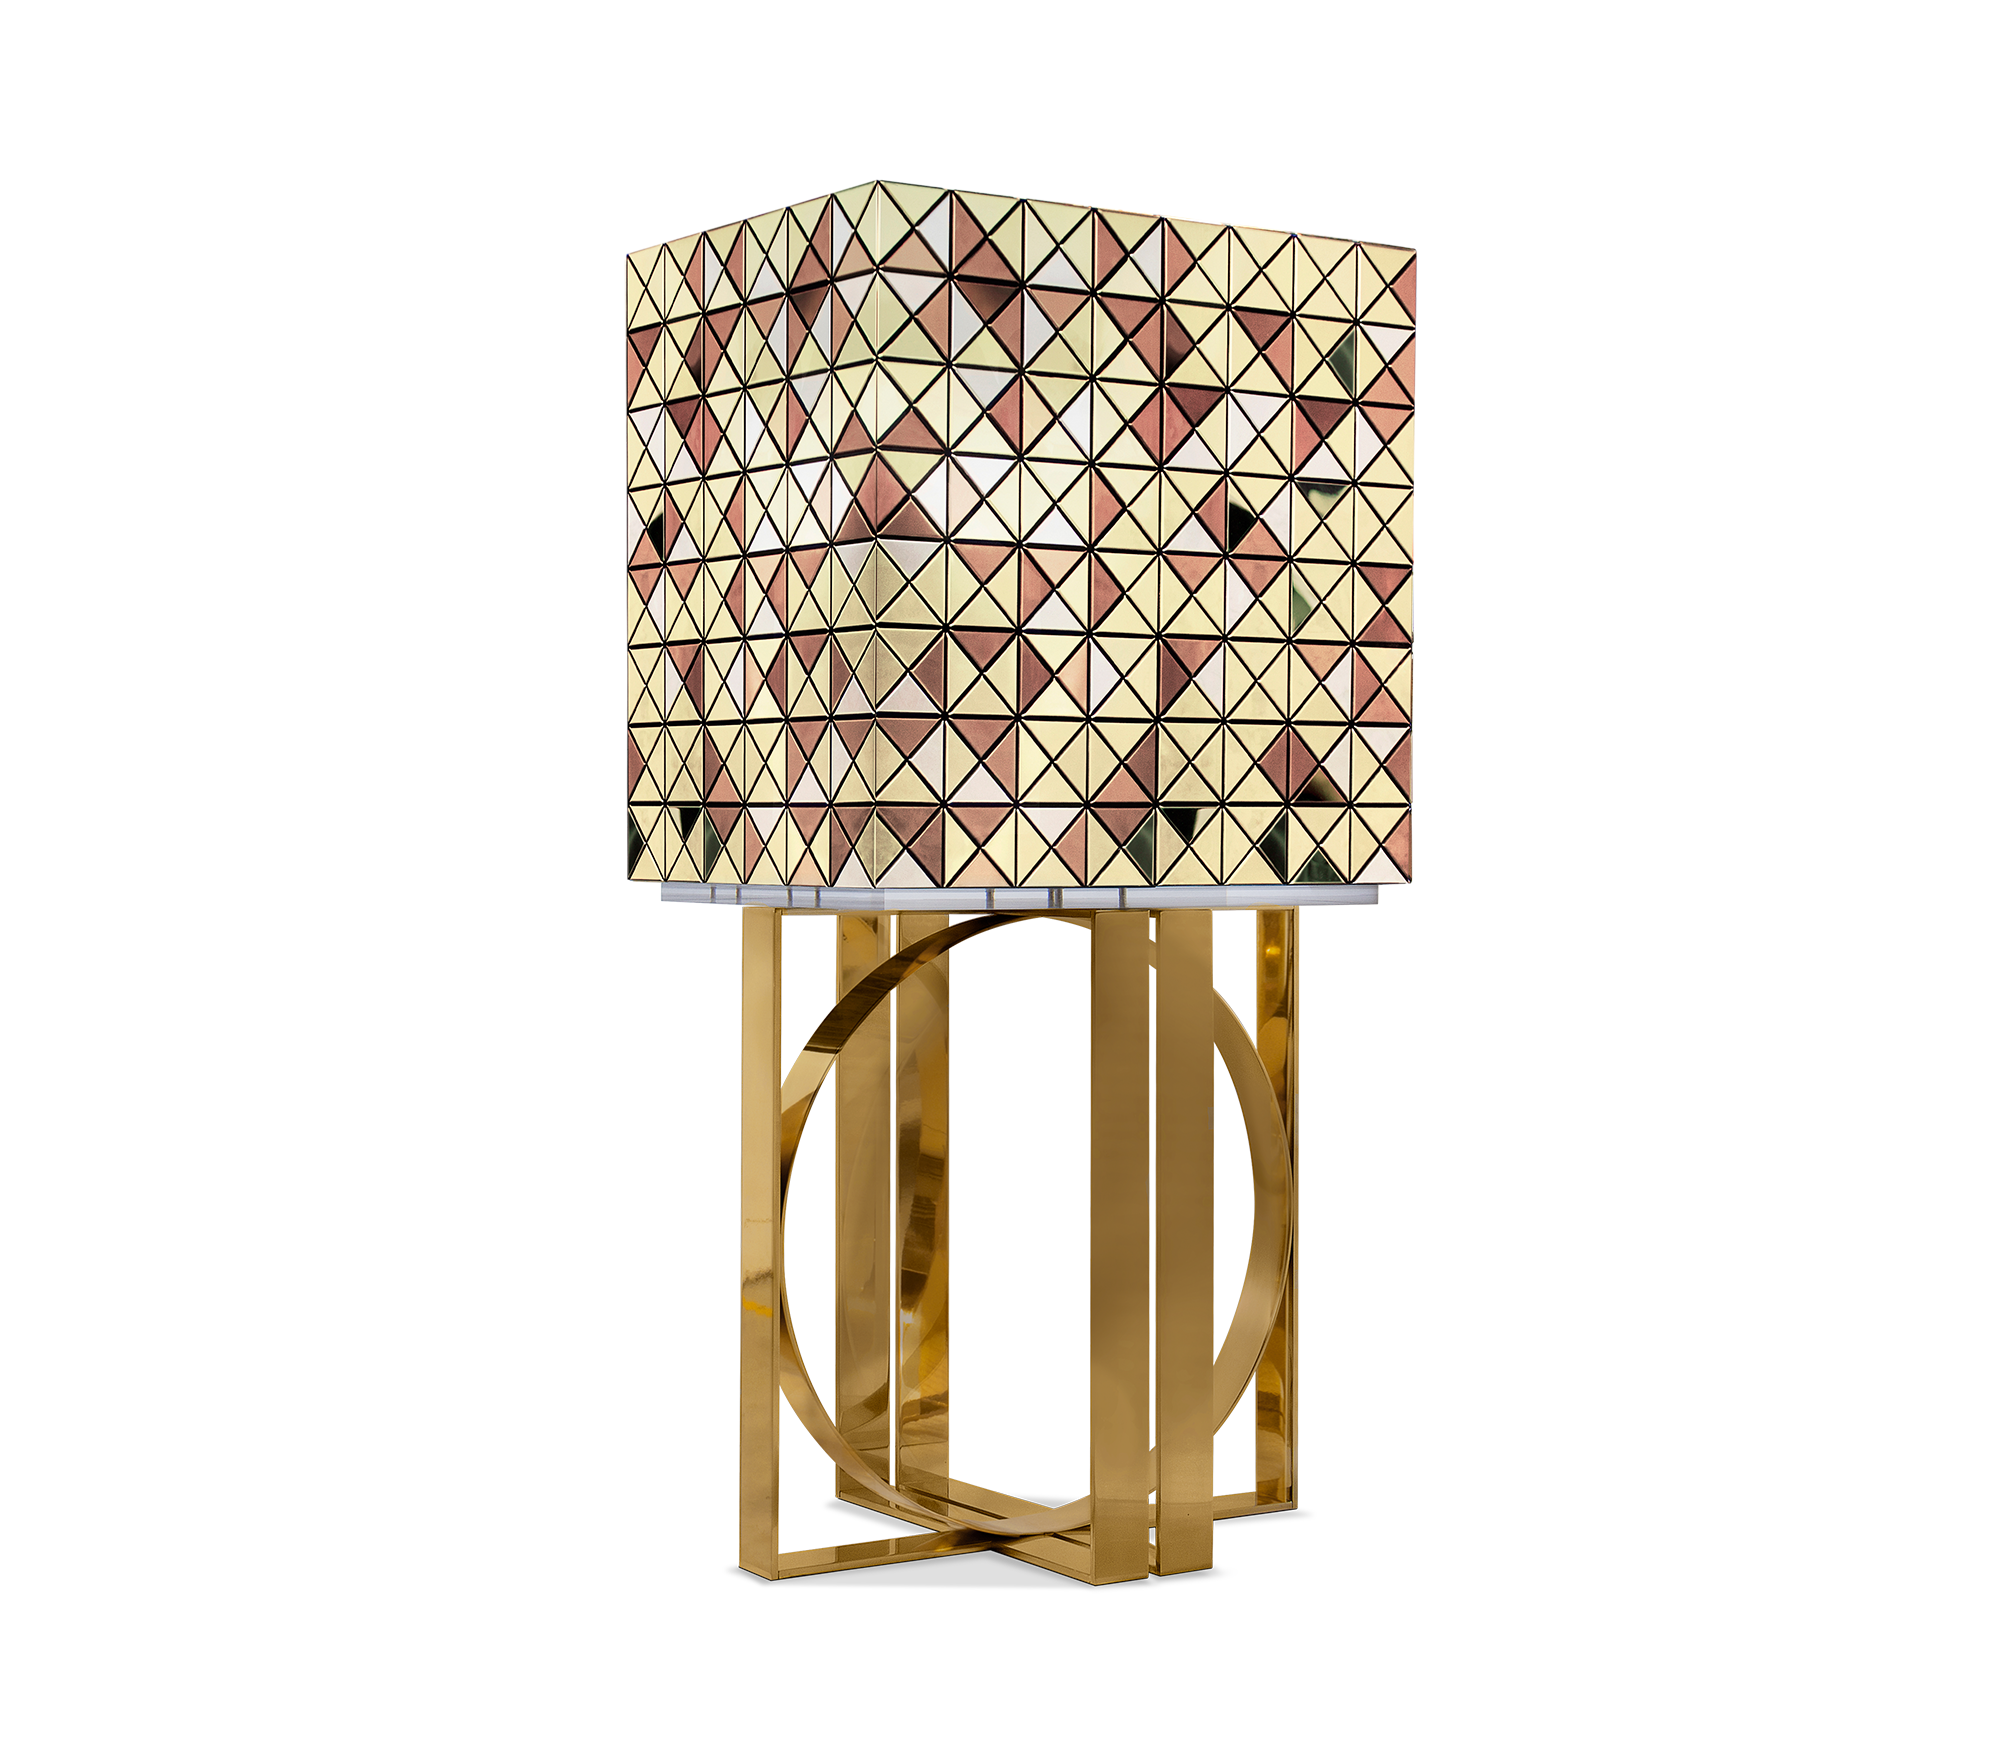 Pixel Anodized Gold Legs Cabinet by Boca do Lobo